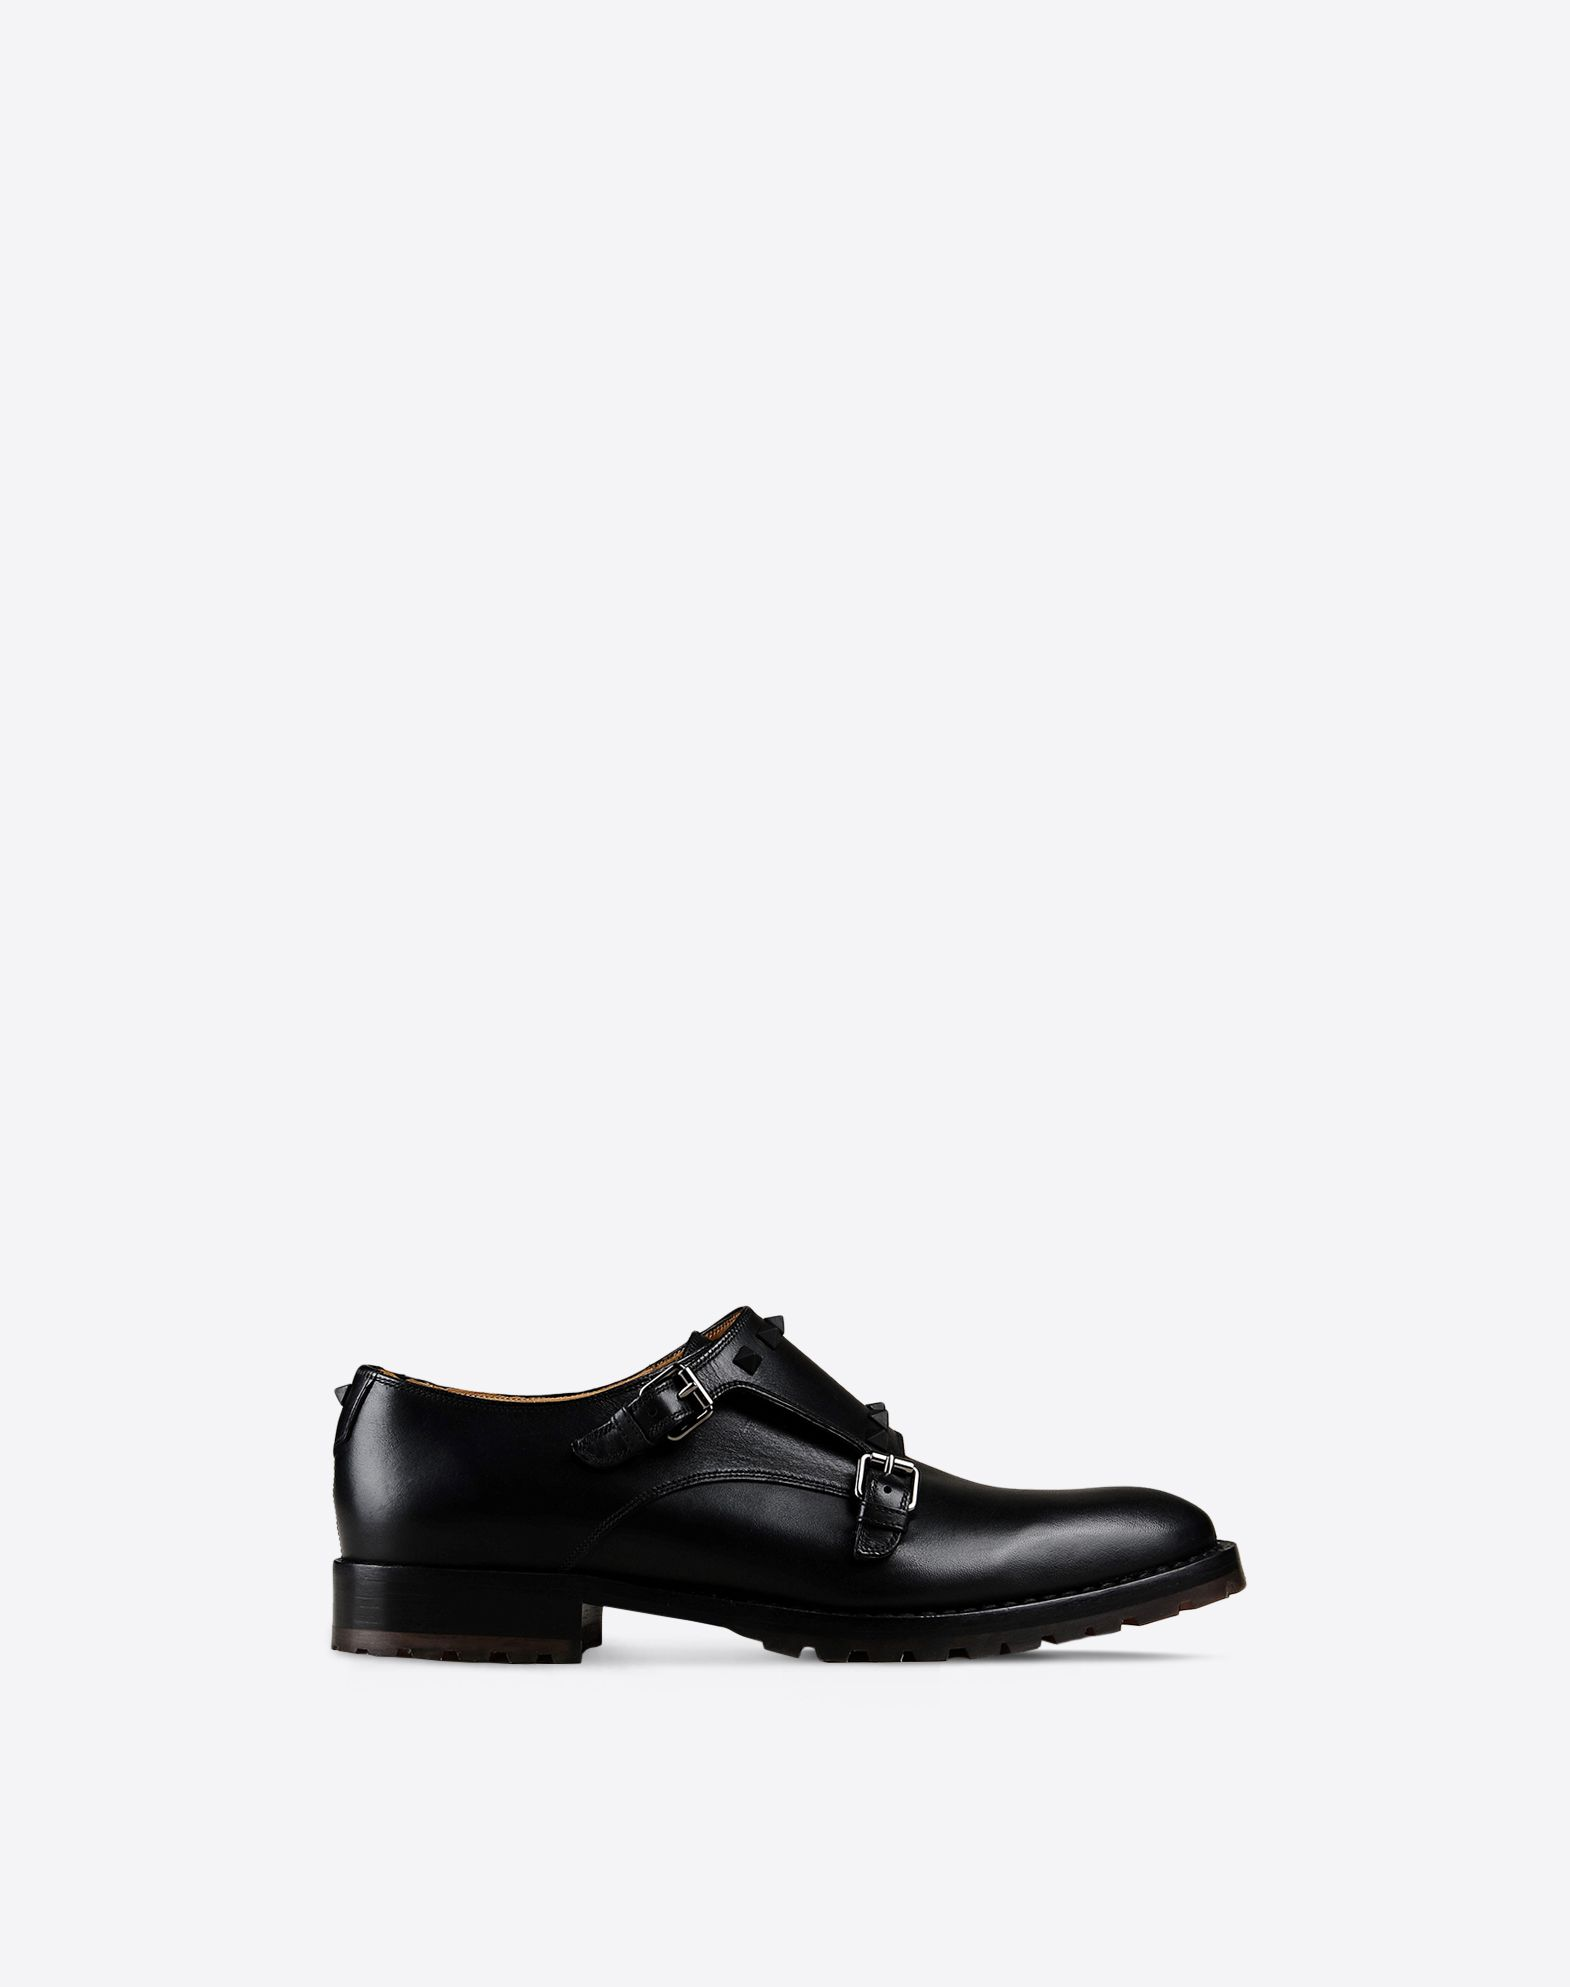 chaussures double boucle chaussures a boucle homme. Black Bedroom Furniture Sets. Home Design Ideas